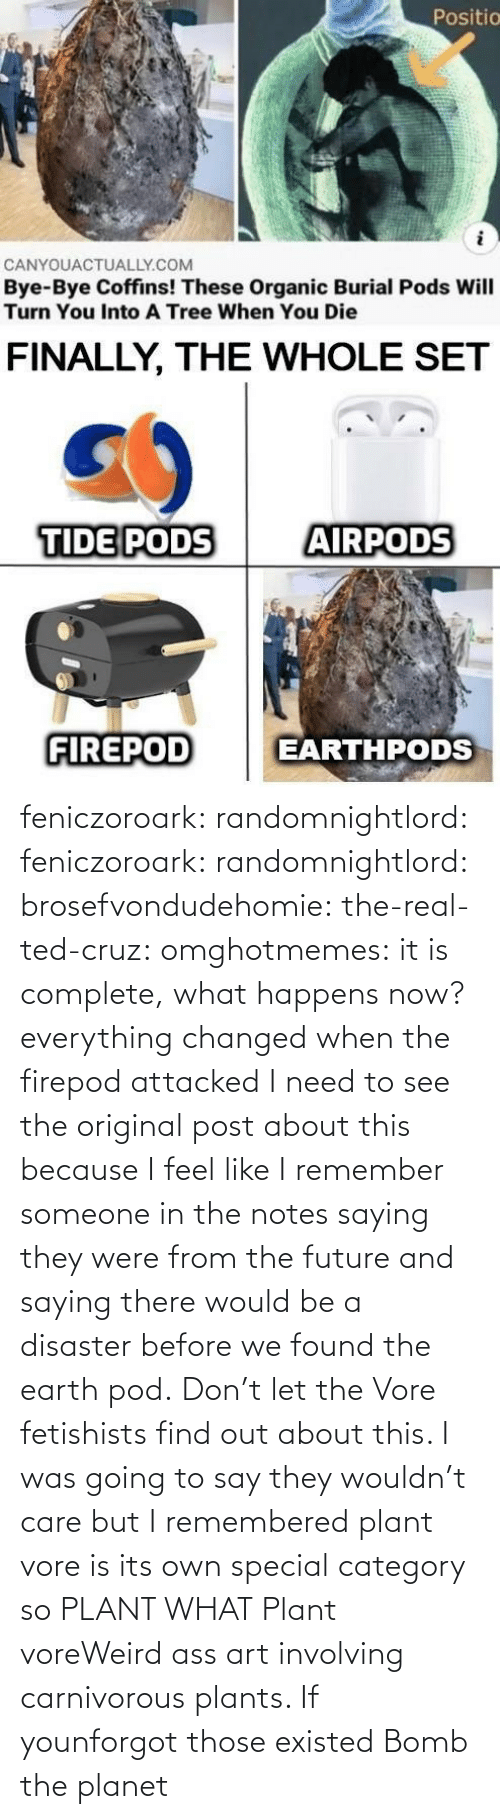 planet: feniczoroark:  randomnightlord:  feniczoroark:  randomnightlord:  brosefvondudehomie: the-real-ted-cruz:  omghotmemes: it is complete, what happens now? everything changed when the firepod attacked    I need to see the original post about this because I feel like I remember someone in the notes saying they were from the future and saying there would be a disaster before we found the earth pod.    Don't let the Vore fetishists find out about this.    I was going to say they wouldn't care but I remembered plant vore is its own special category so   PLANT WHAT   Plant voreWeird ass art involving carnivorous plants. If younforgot those existed   Bomb the planet